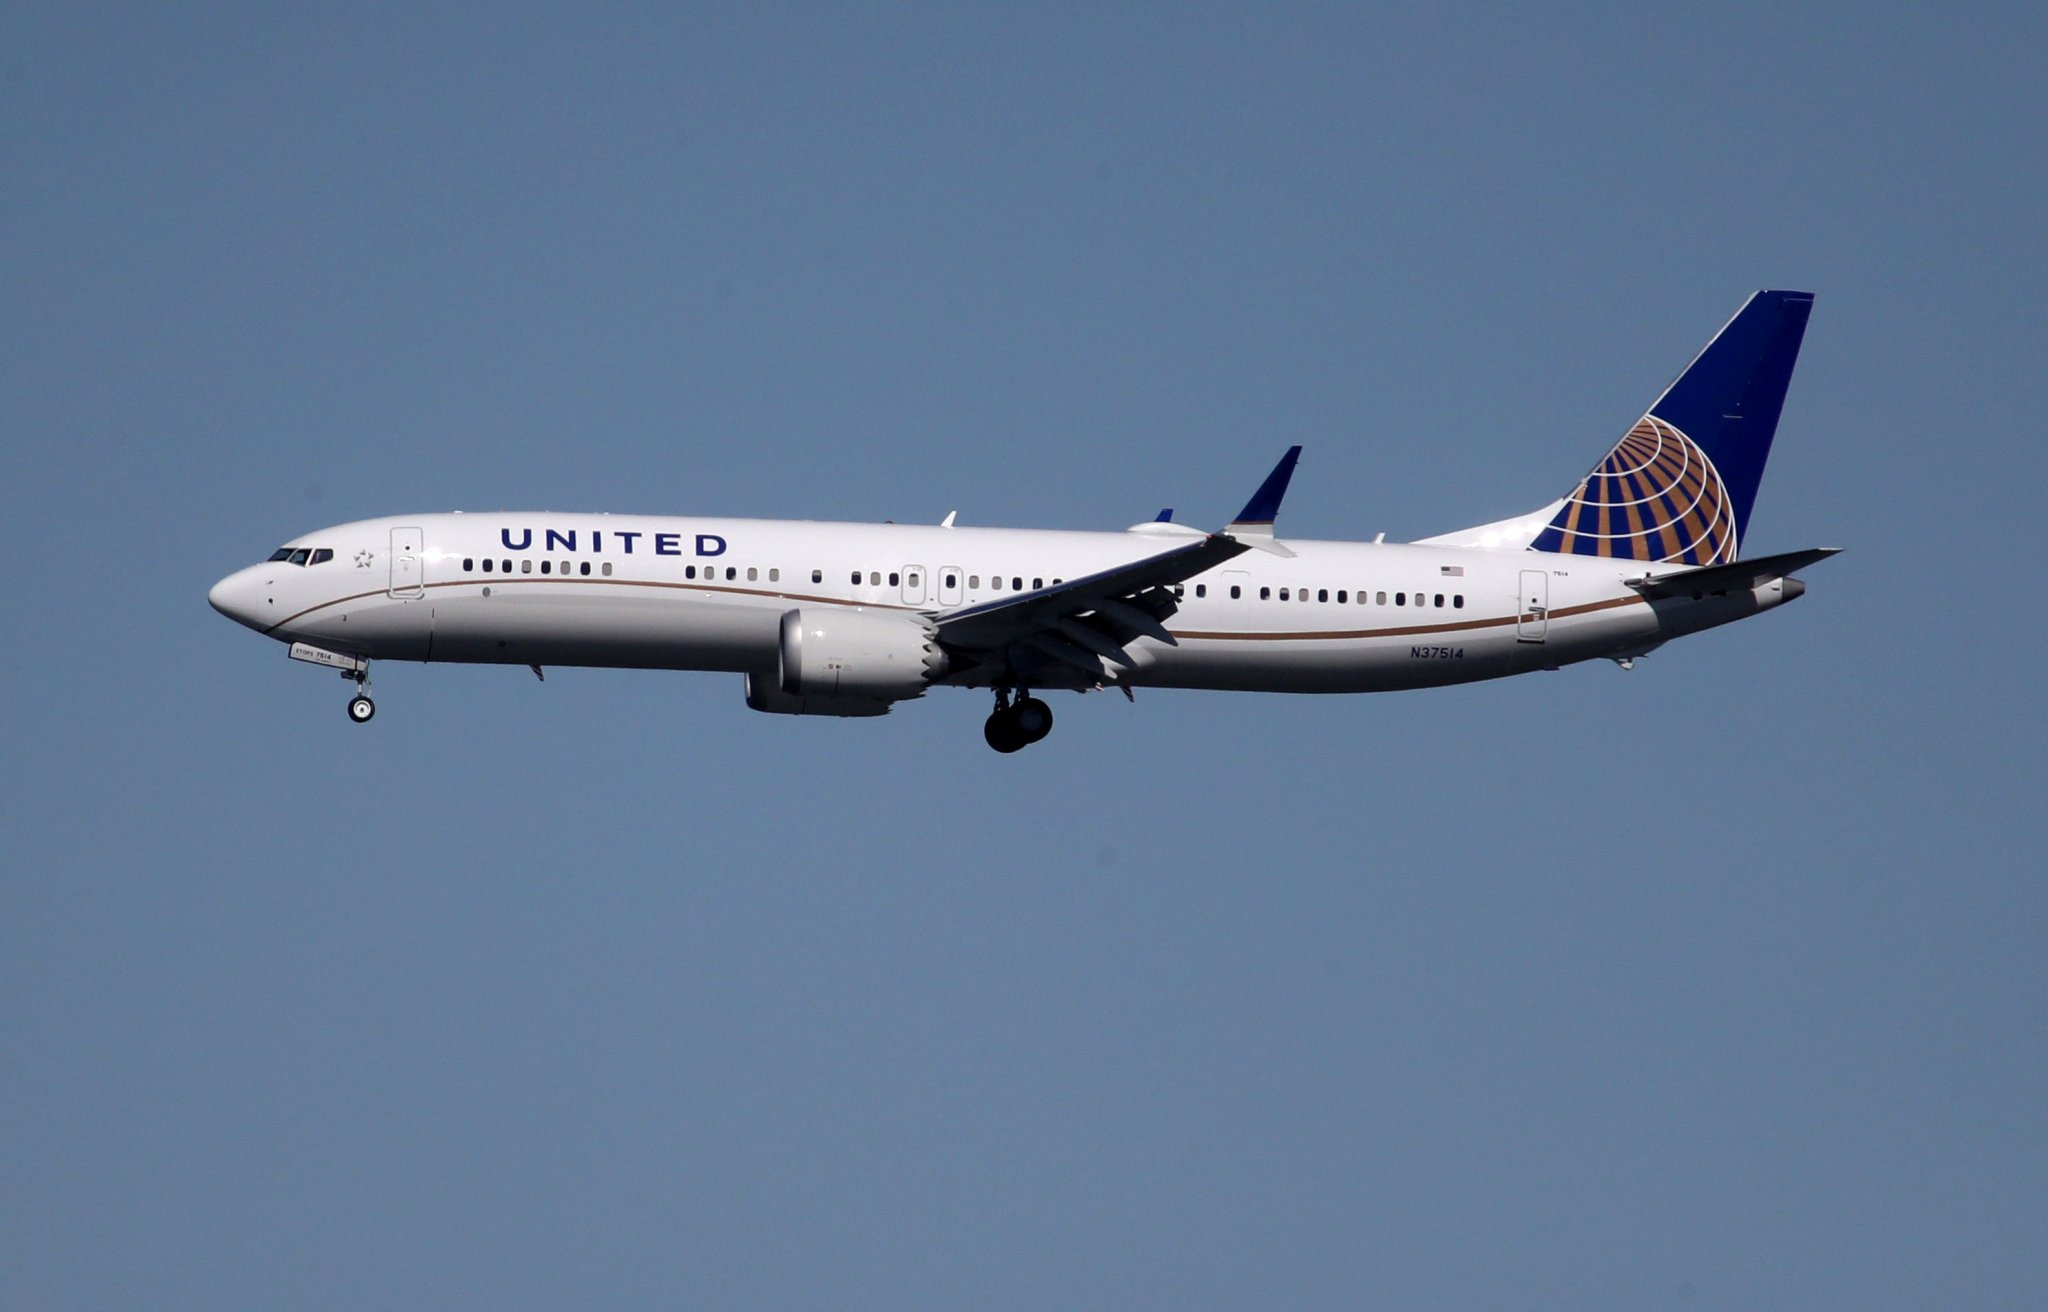 United unveils first Boeing 737 MAX 8 routes with new cabins, in-seat TVs